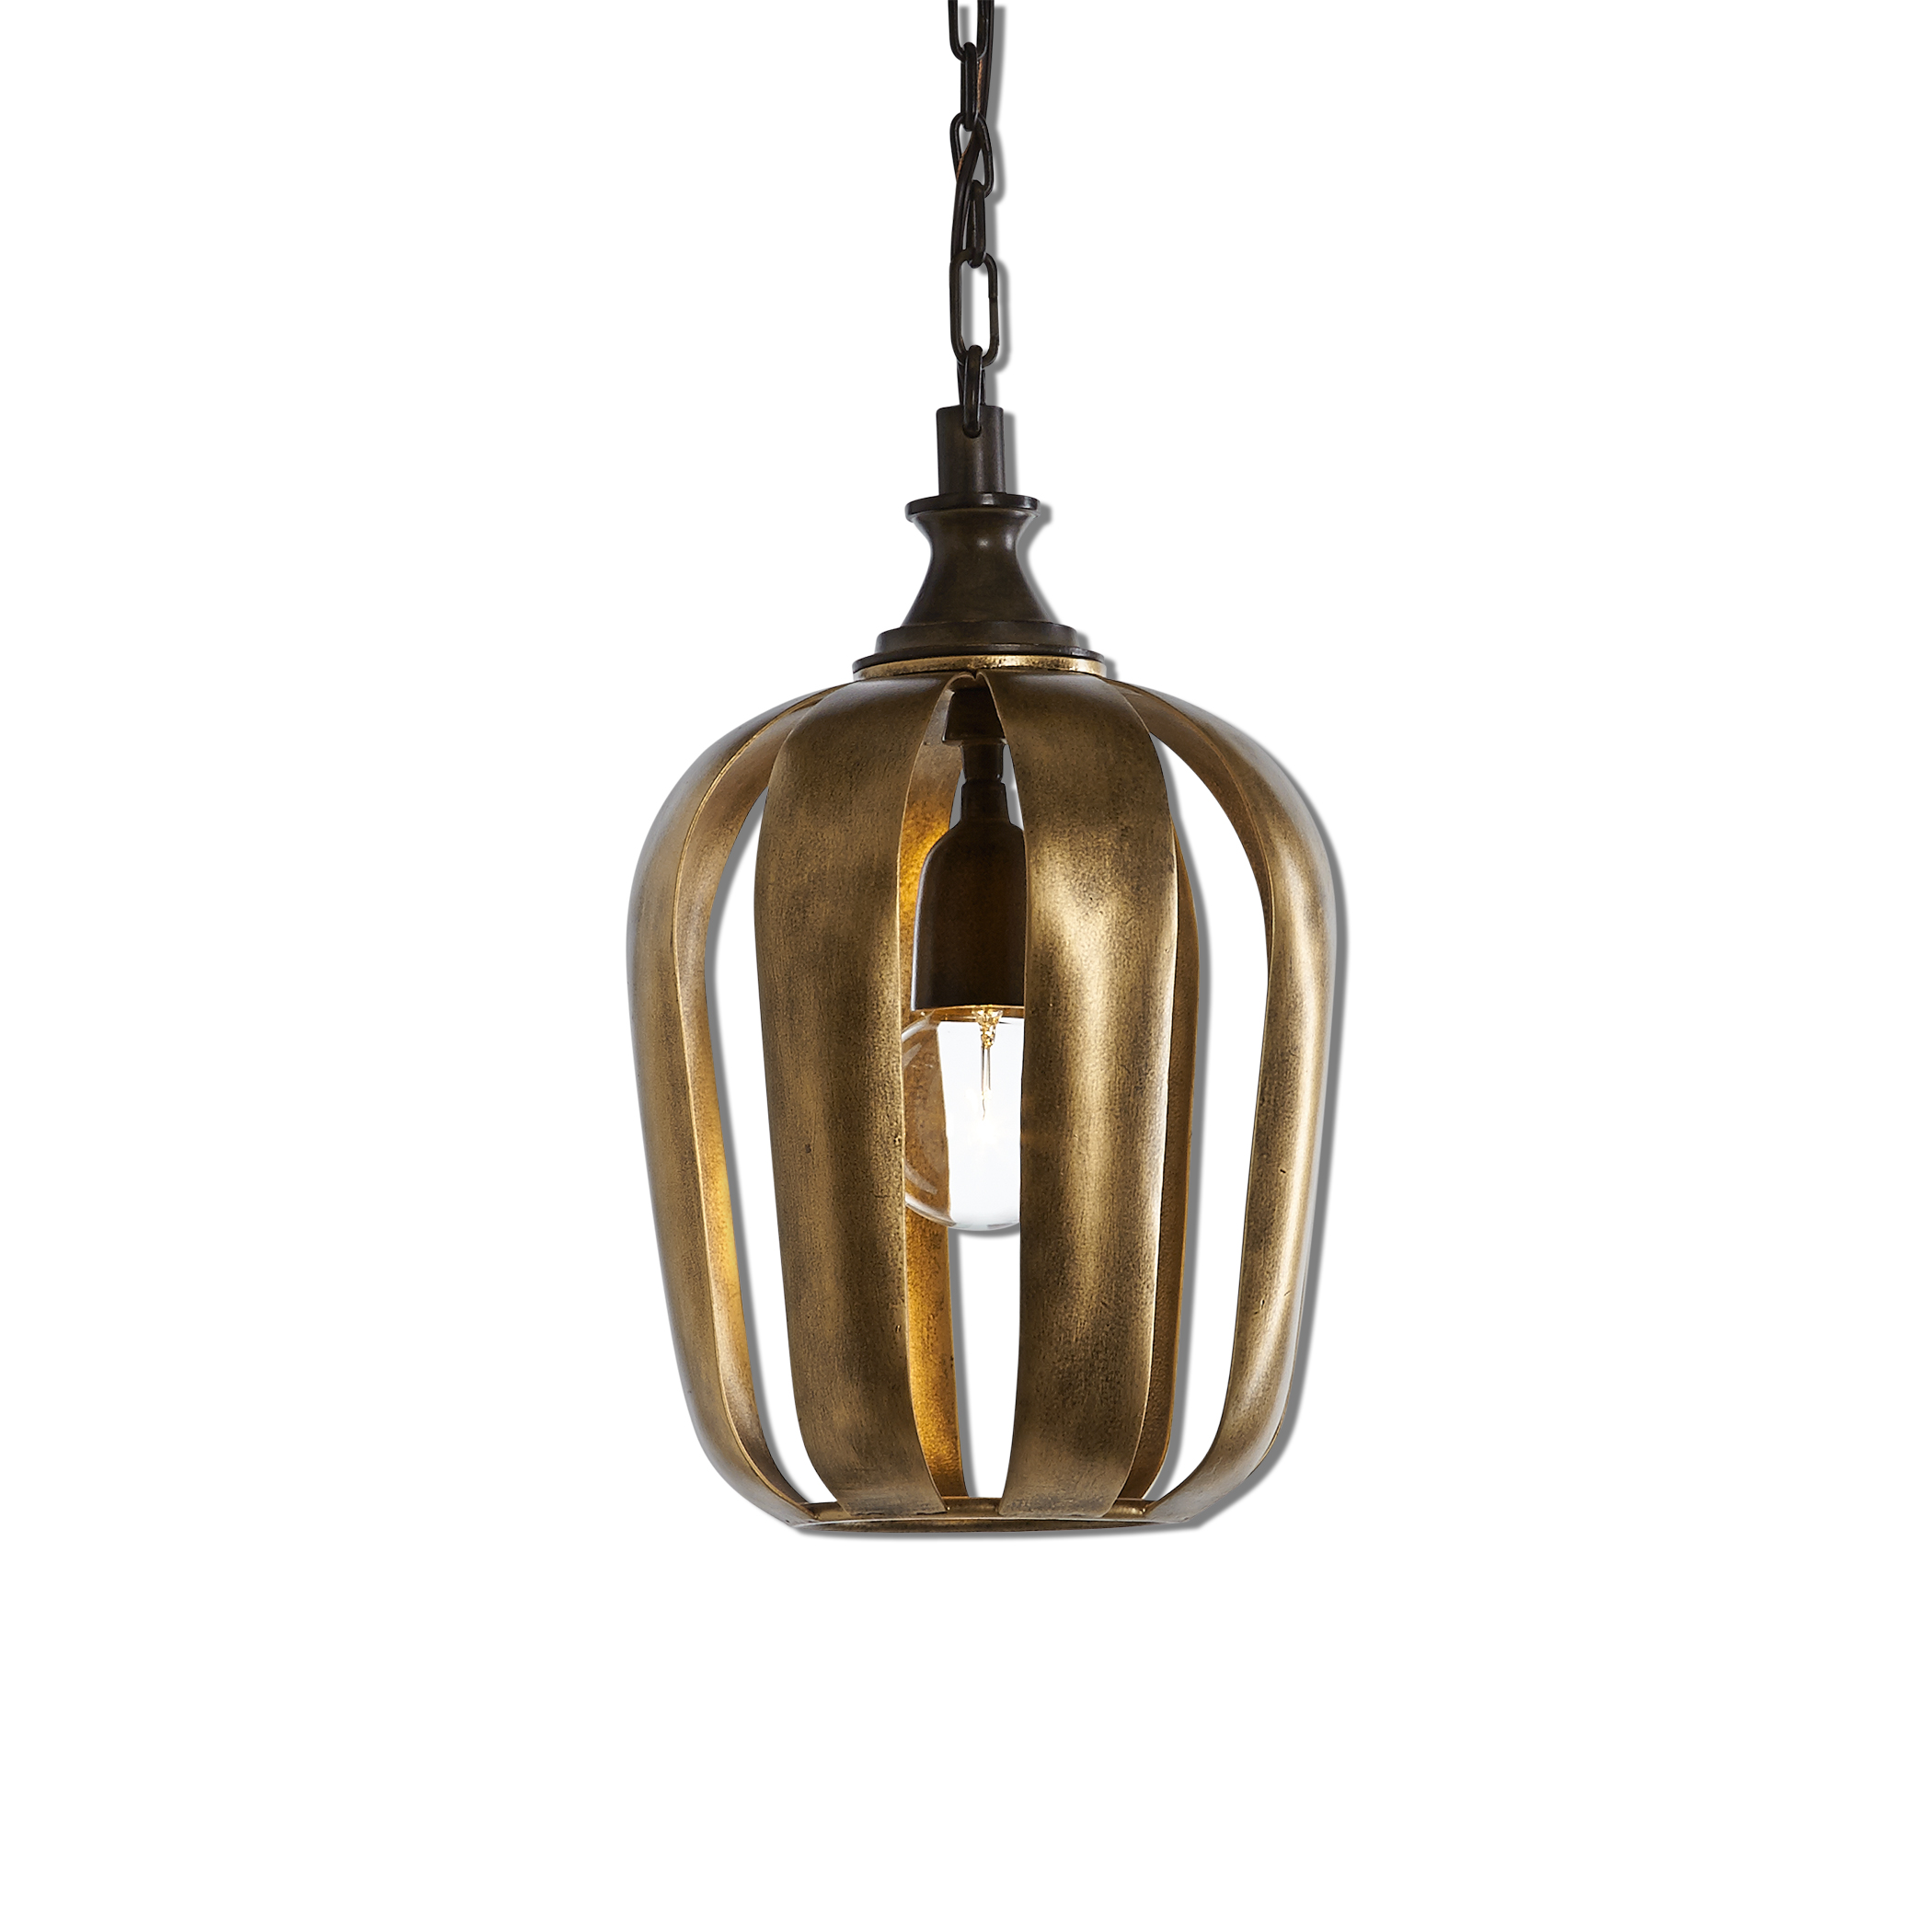 Uttermost Lighting Fixtures Zucca 1 Light Antique Gold Mini Pendant - Item Number: 22034